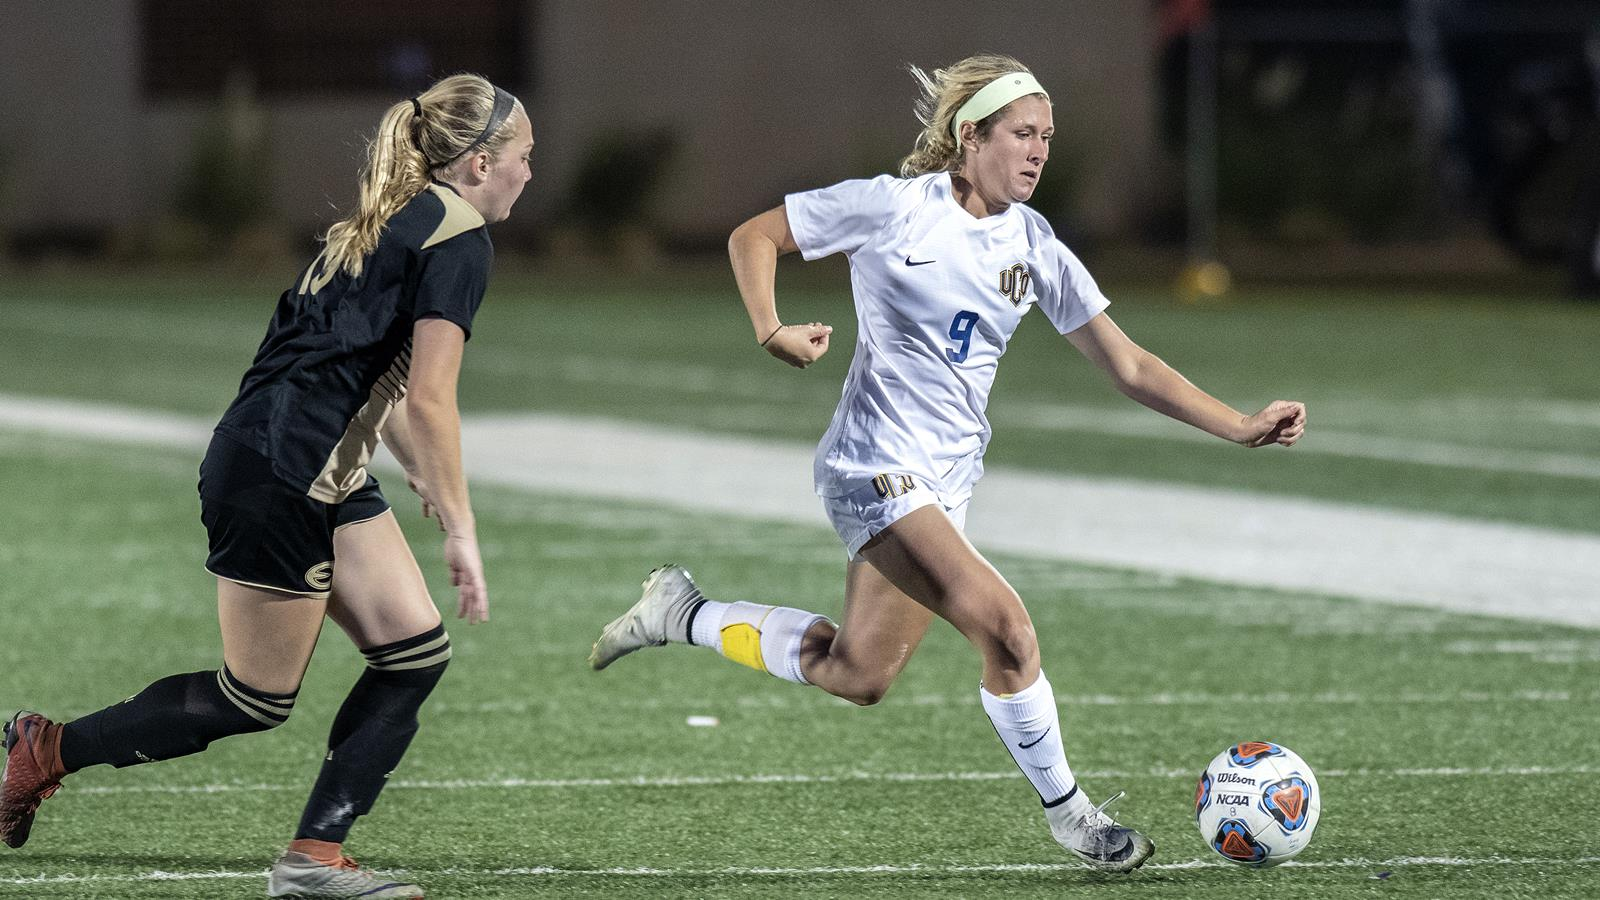 8 Of The Most Prolific Scorers In DII Womens Soccer This